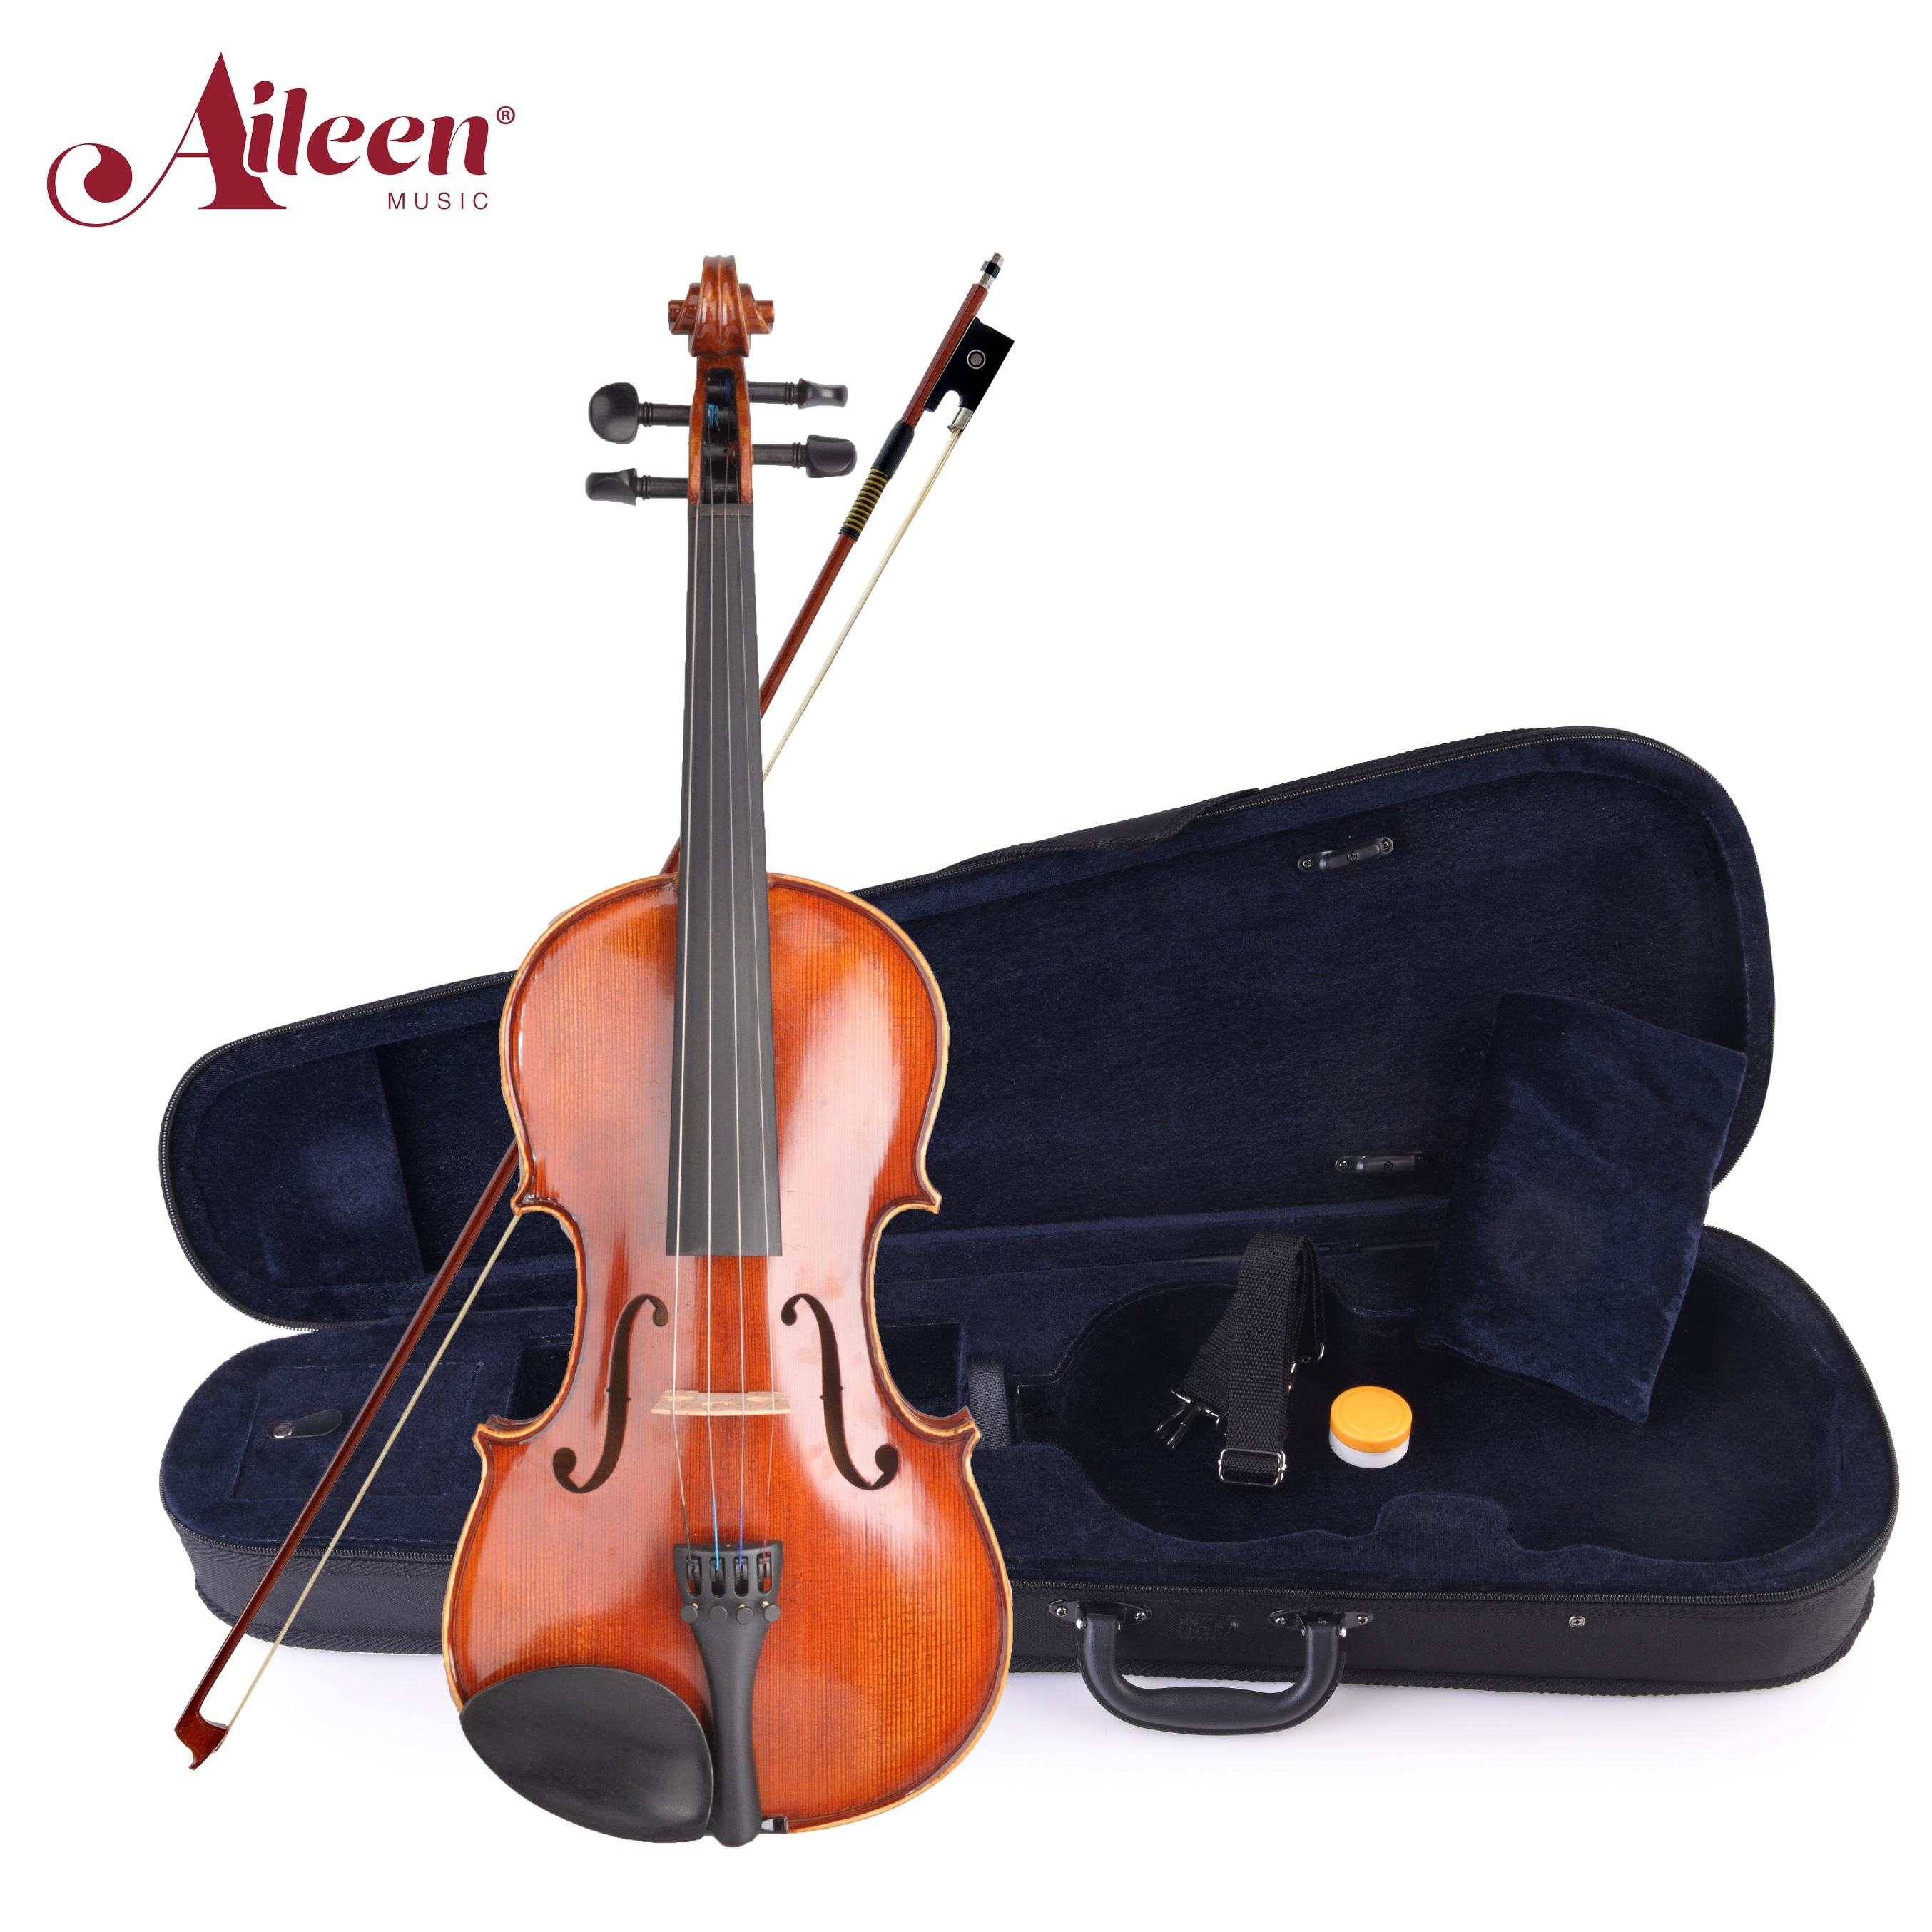 AileenMusic good musical instruments nice flamed violin (VM125A)